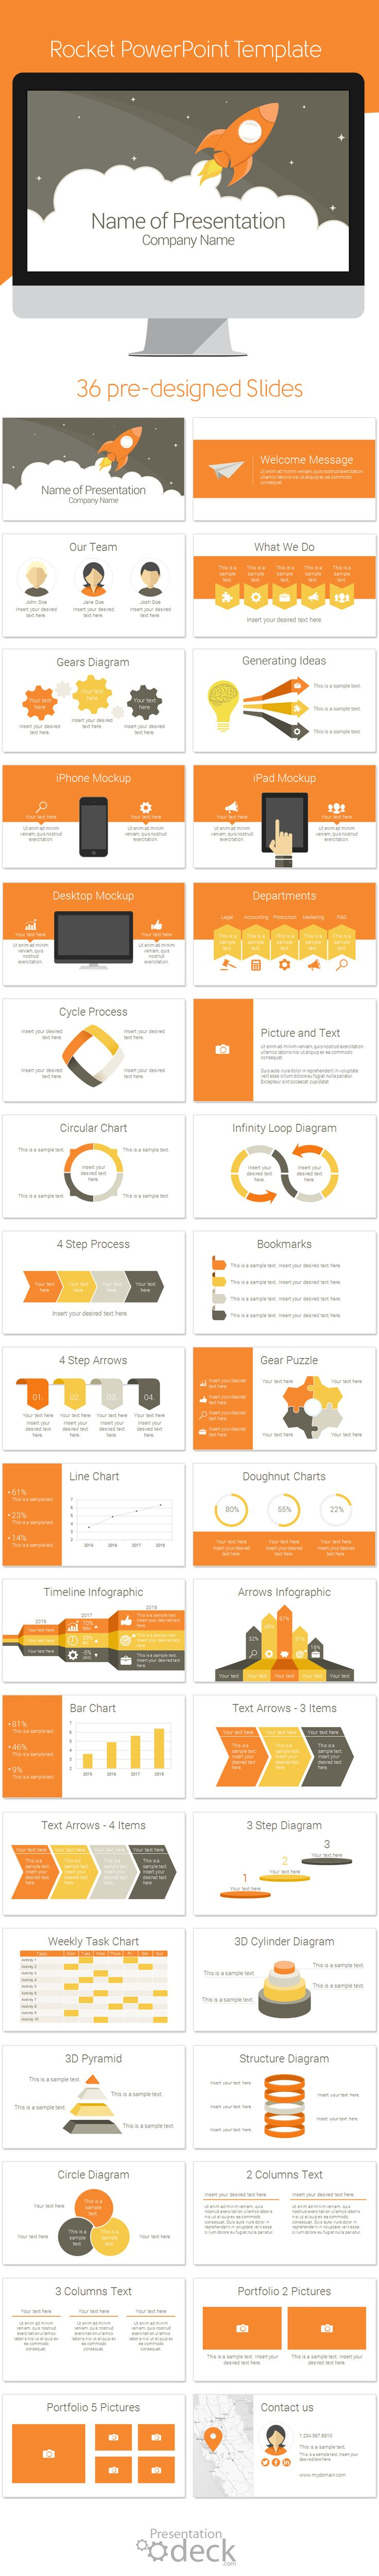 Rocket PowerPoint template in flat design style with 36 slides. This template is multipurpose and can be used in any topics including, business startup, marketing, graphic design, creative agencies, etc.  #powerpoint #powerpoint_templates #presentations